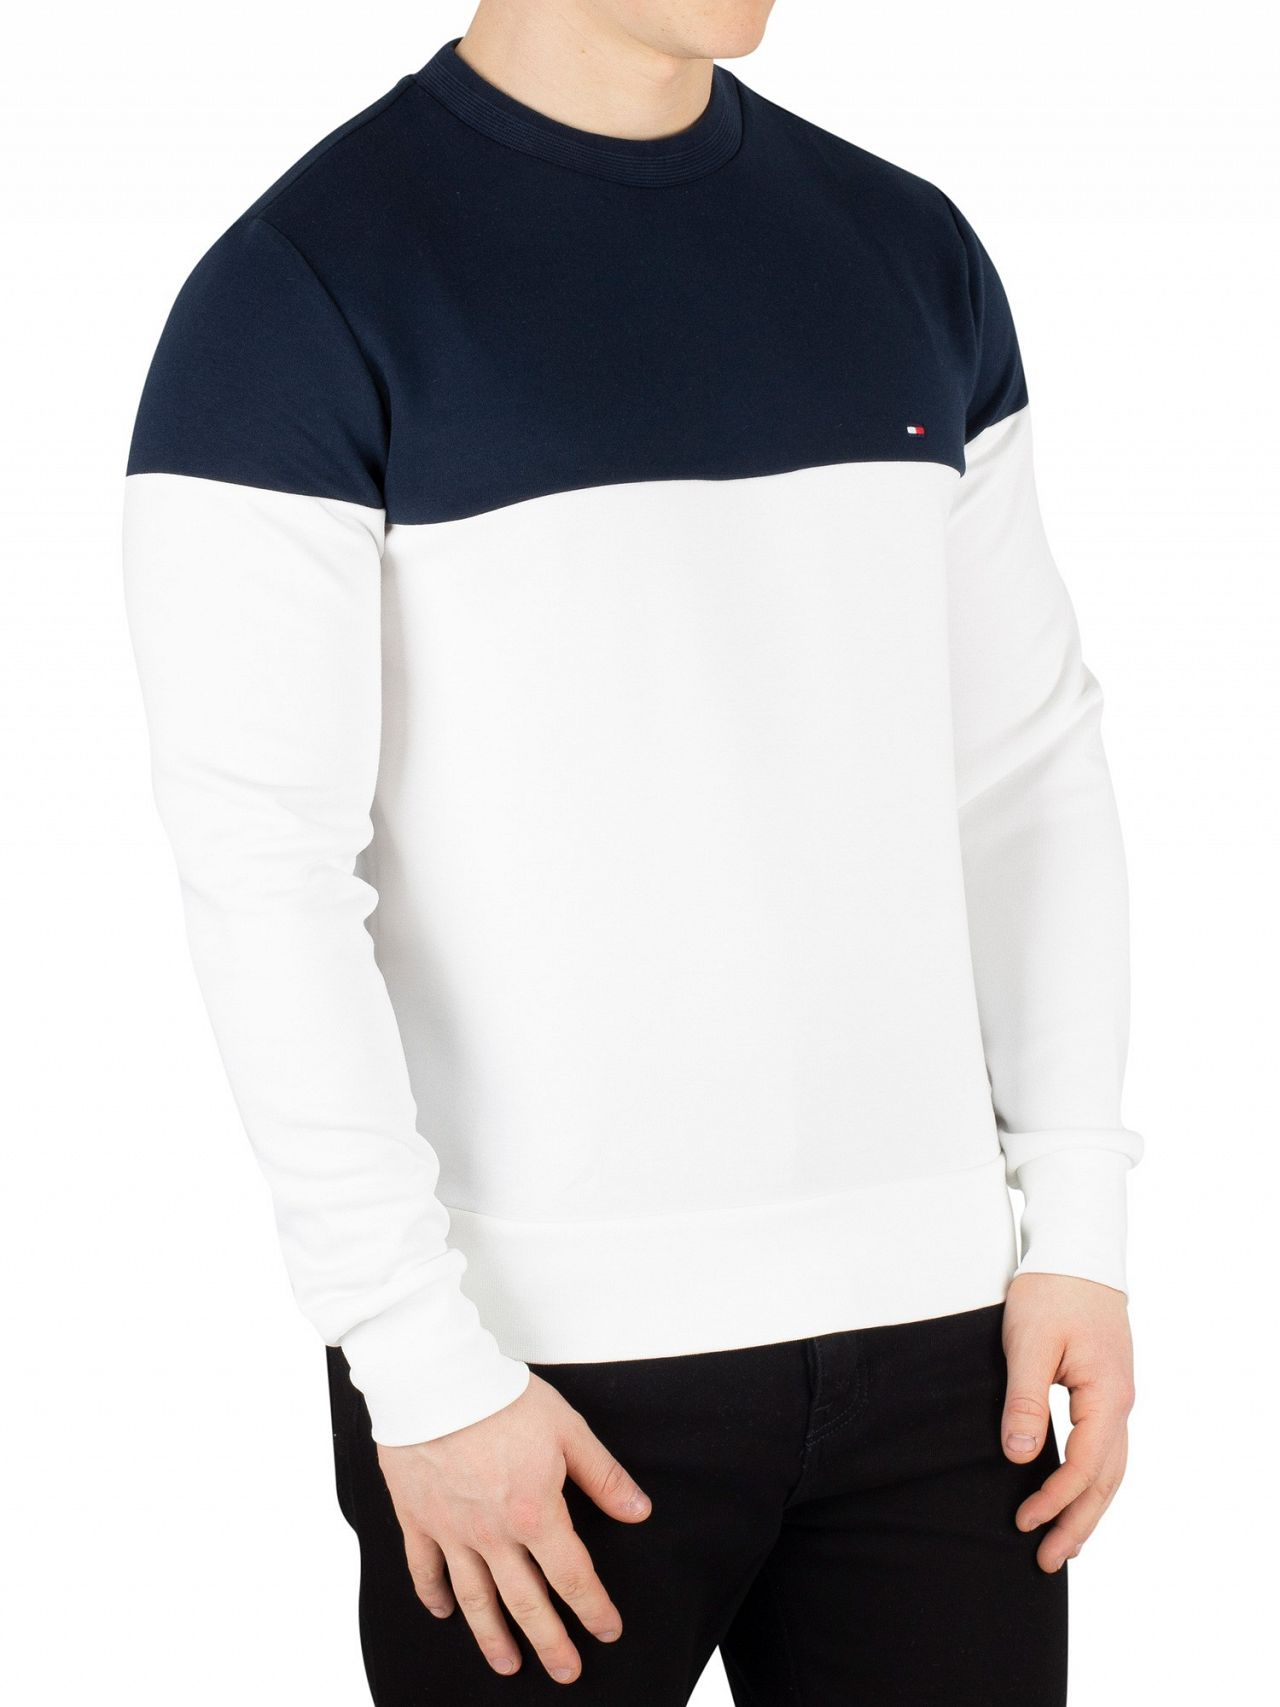 a7a71d13 Tommy Hilfiger Bright White Pieced Colorblock Sweatshirt | Standout